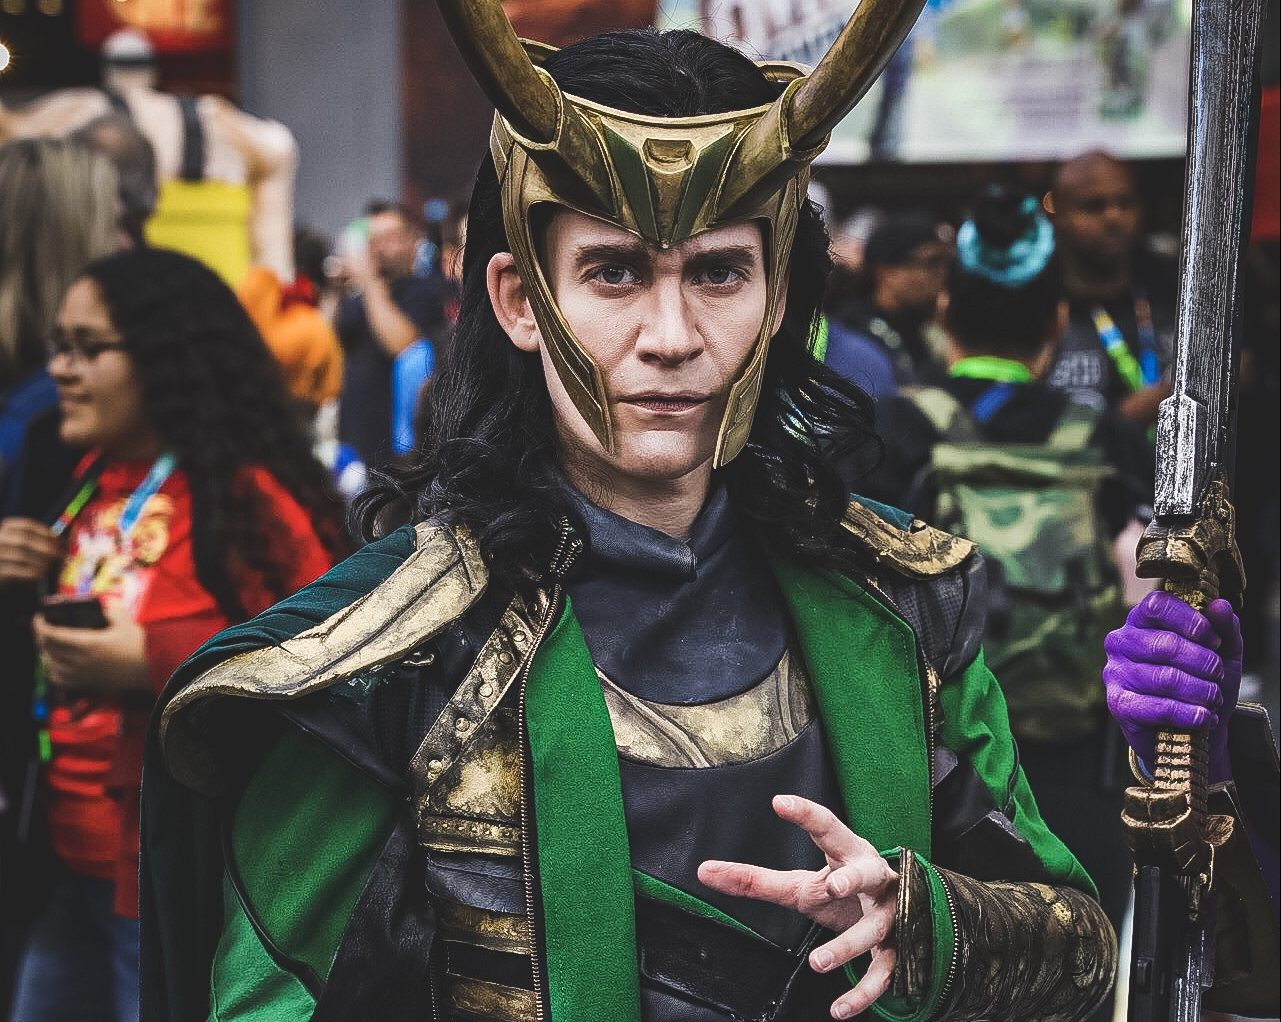 HHW Gaming: The God of Mischief Loki Coming To 'Fornite,' But There Is A Catch